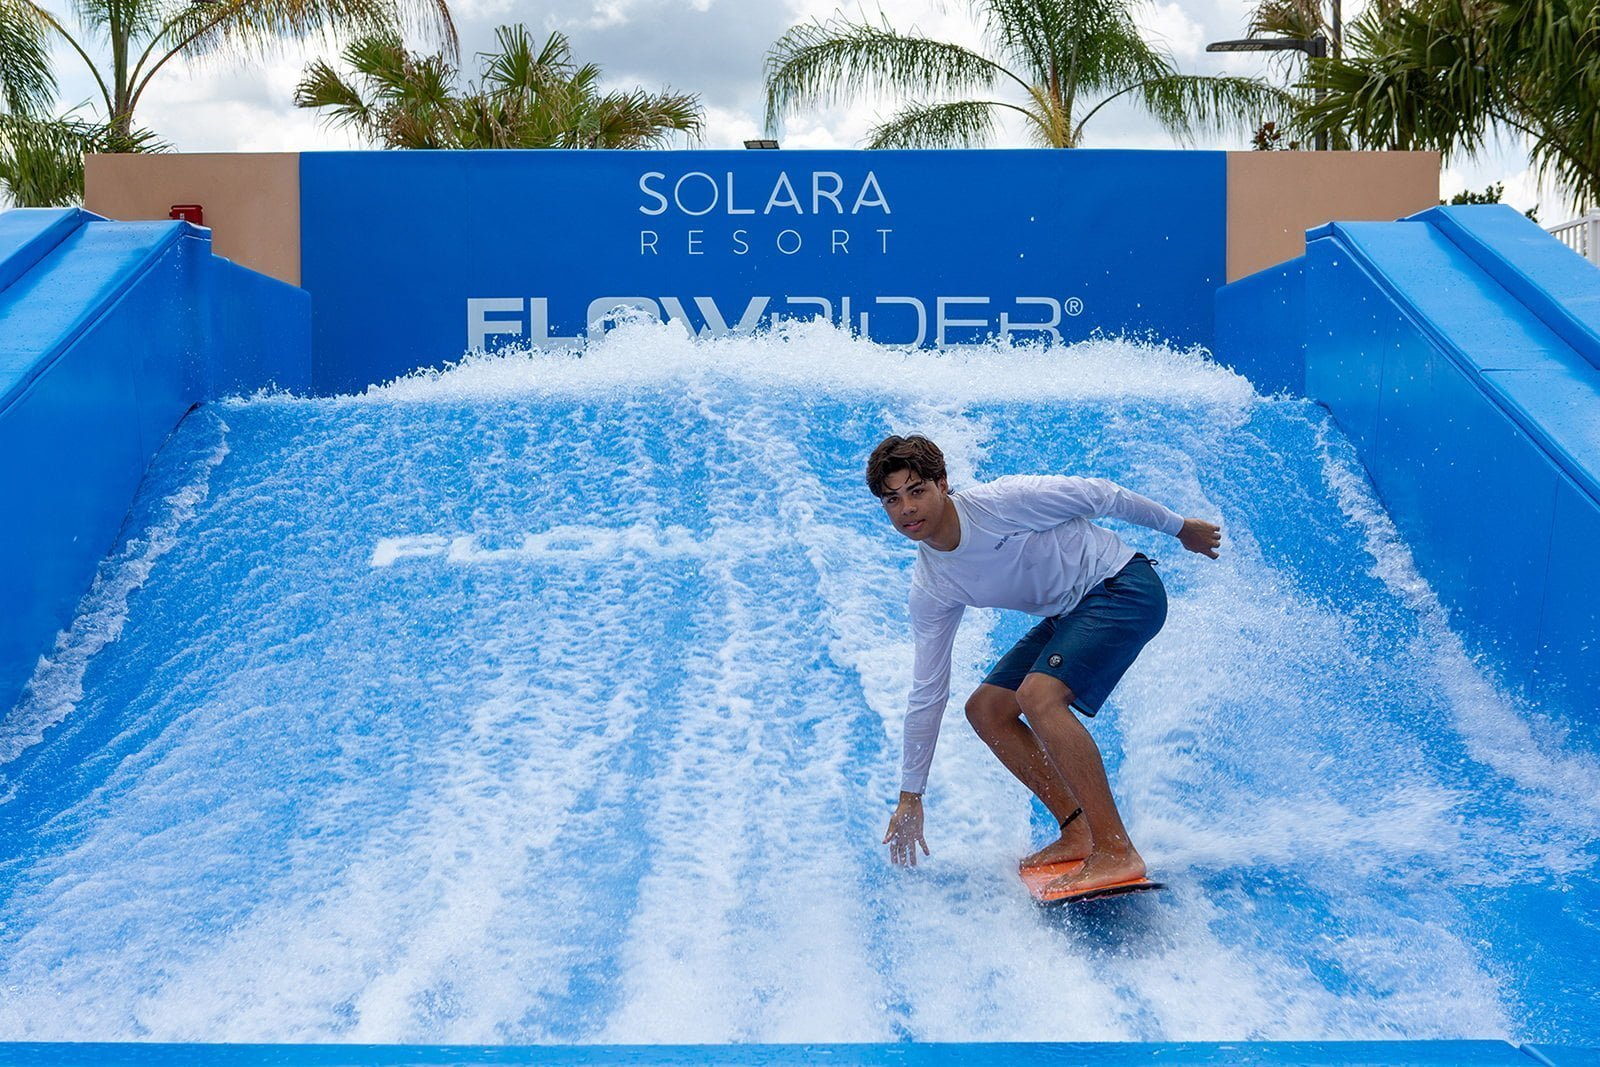 Solara Resort Amenities